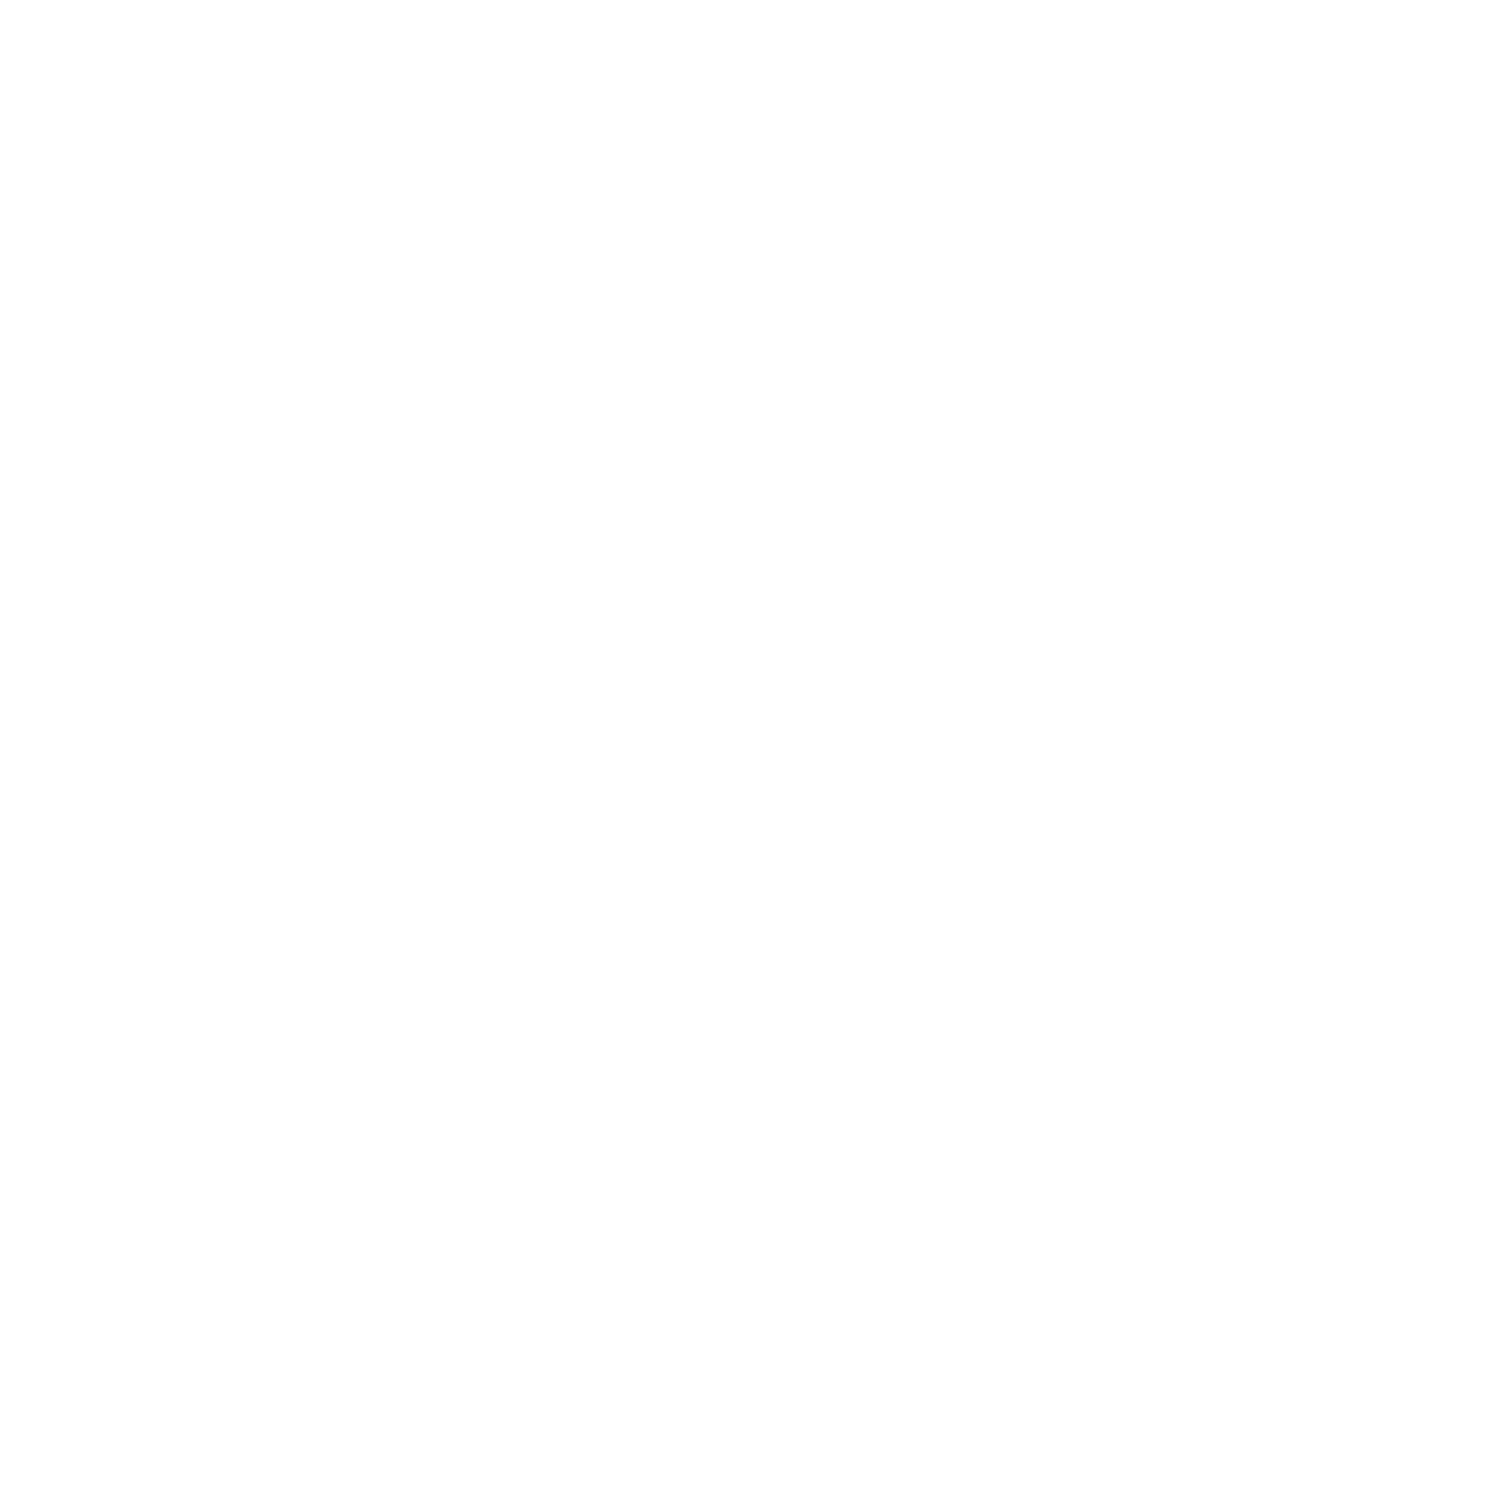 Our Impact_Icon_White_CMS.png